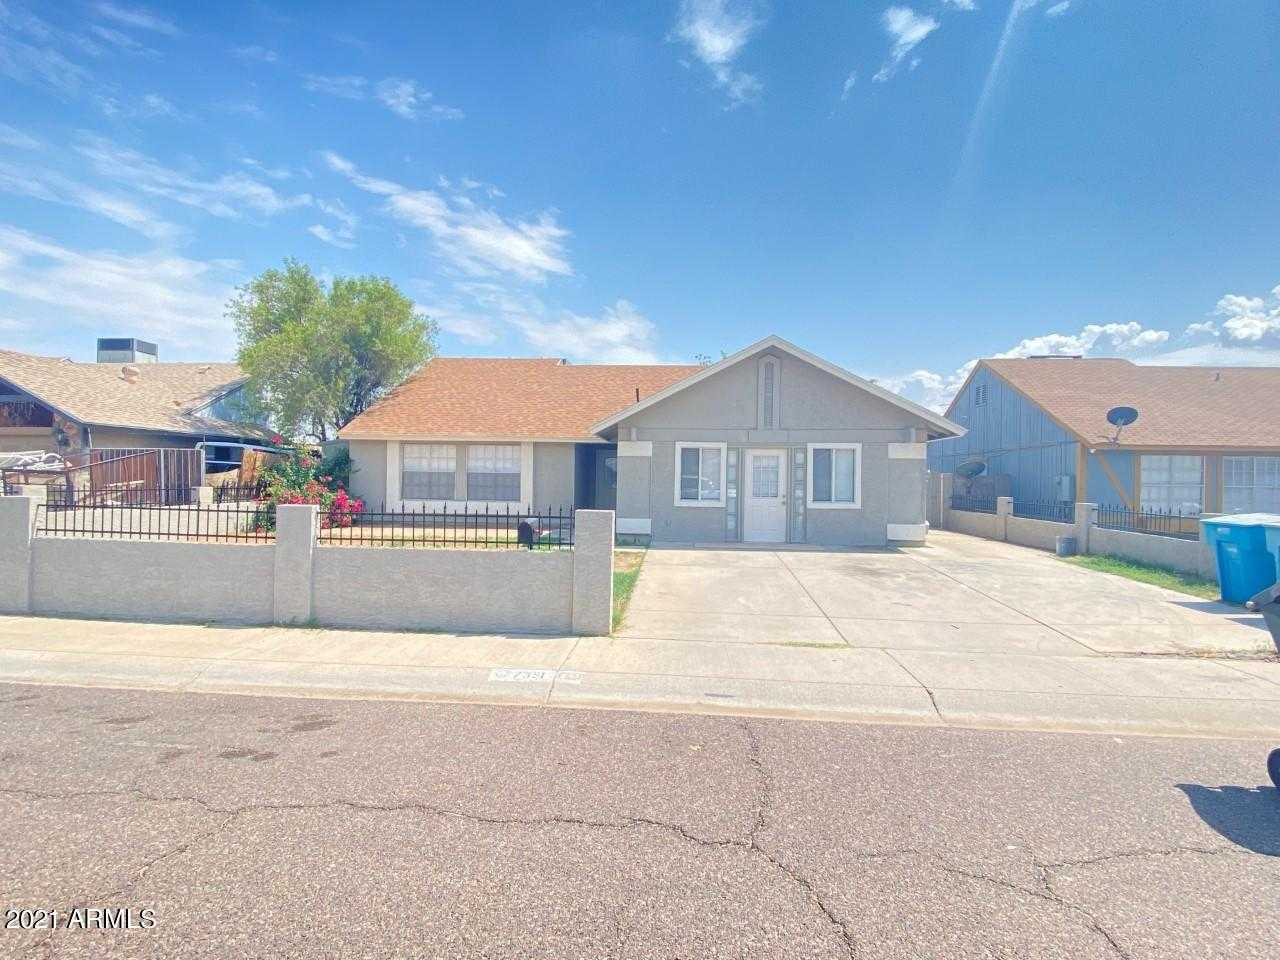 $339,900 - 4Br/3Ba - Home for Sale in Sunset Meadows Replat Lot 1-204, Phoenix